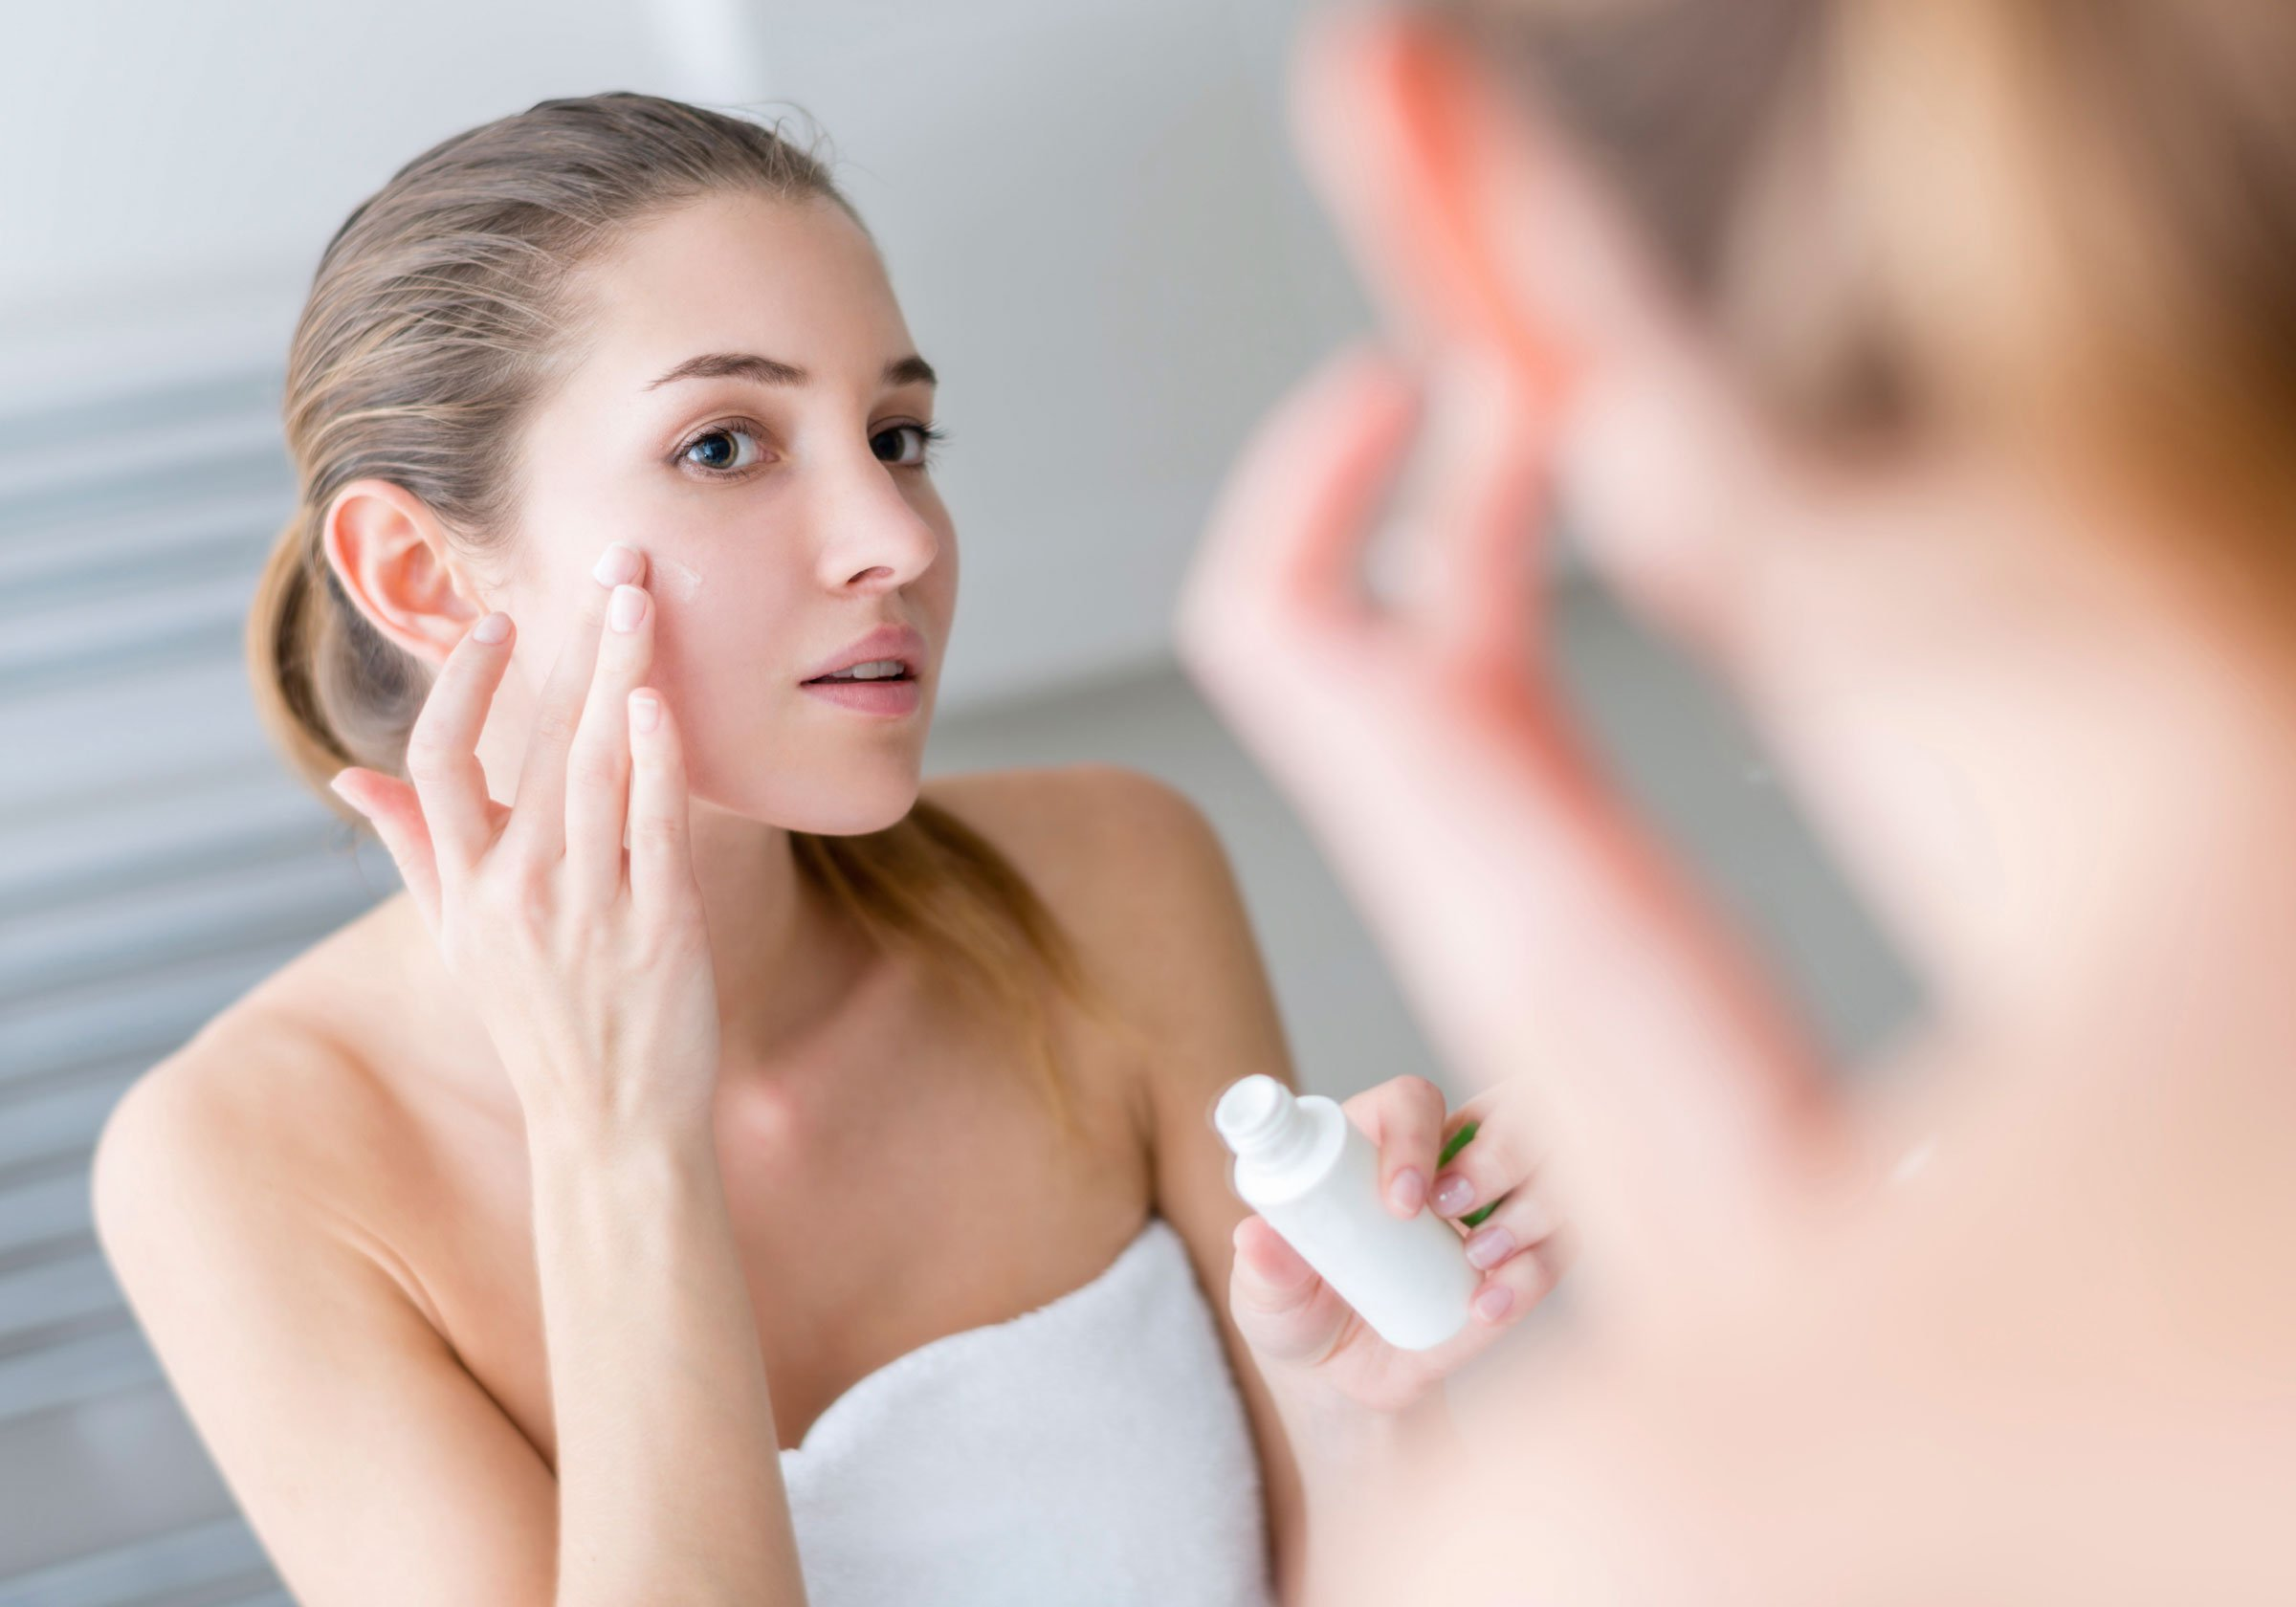 10 Tips to Preserve Your Skin This Winter